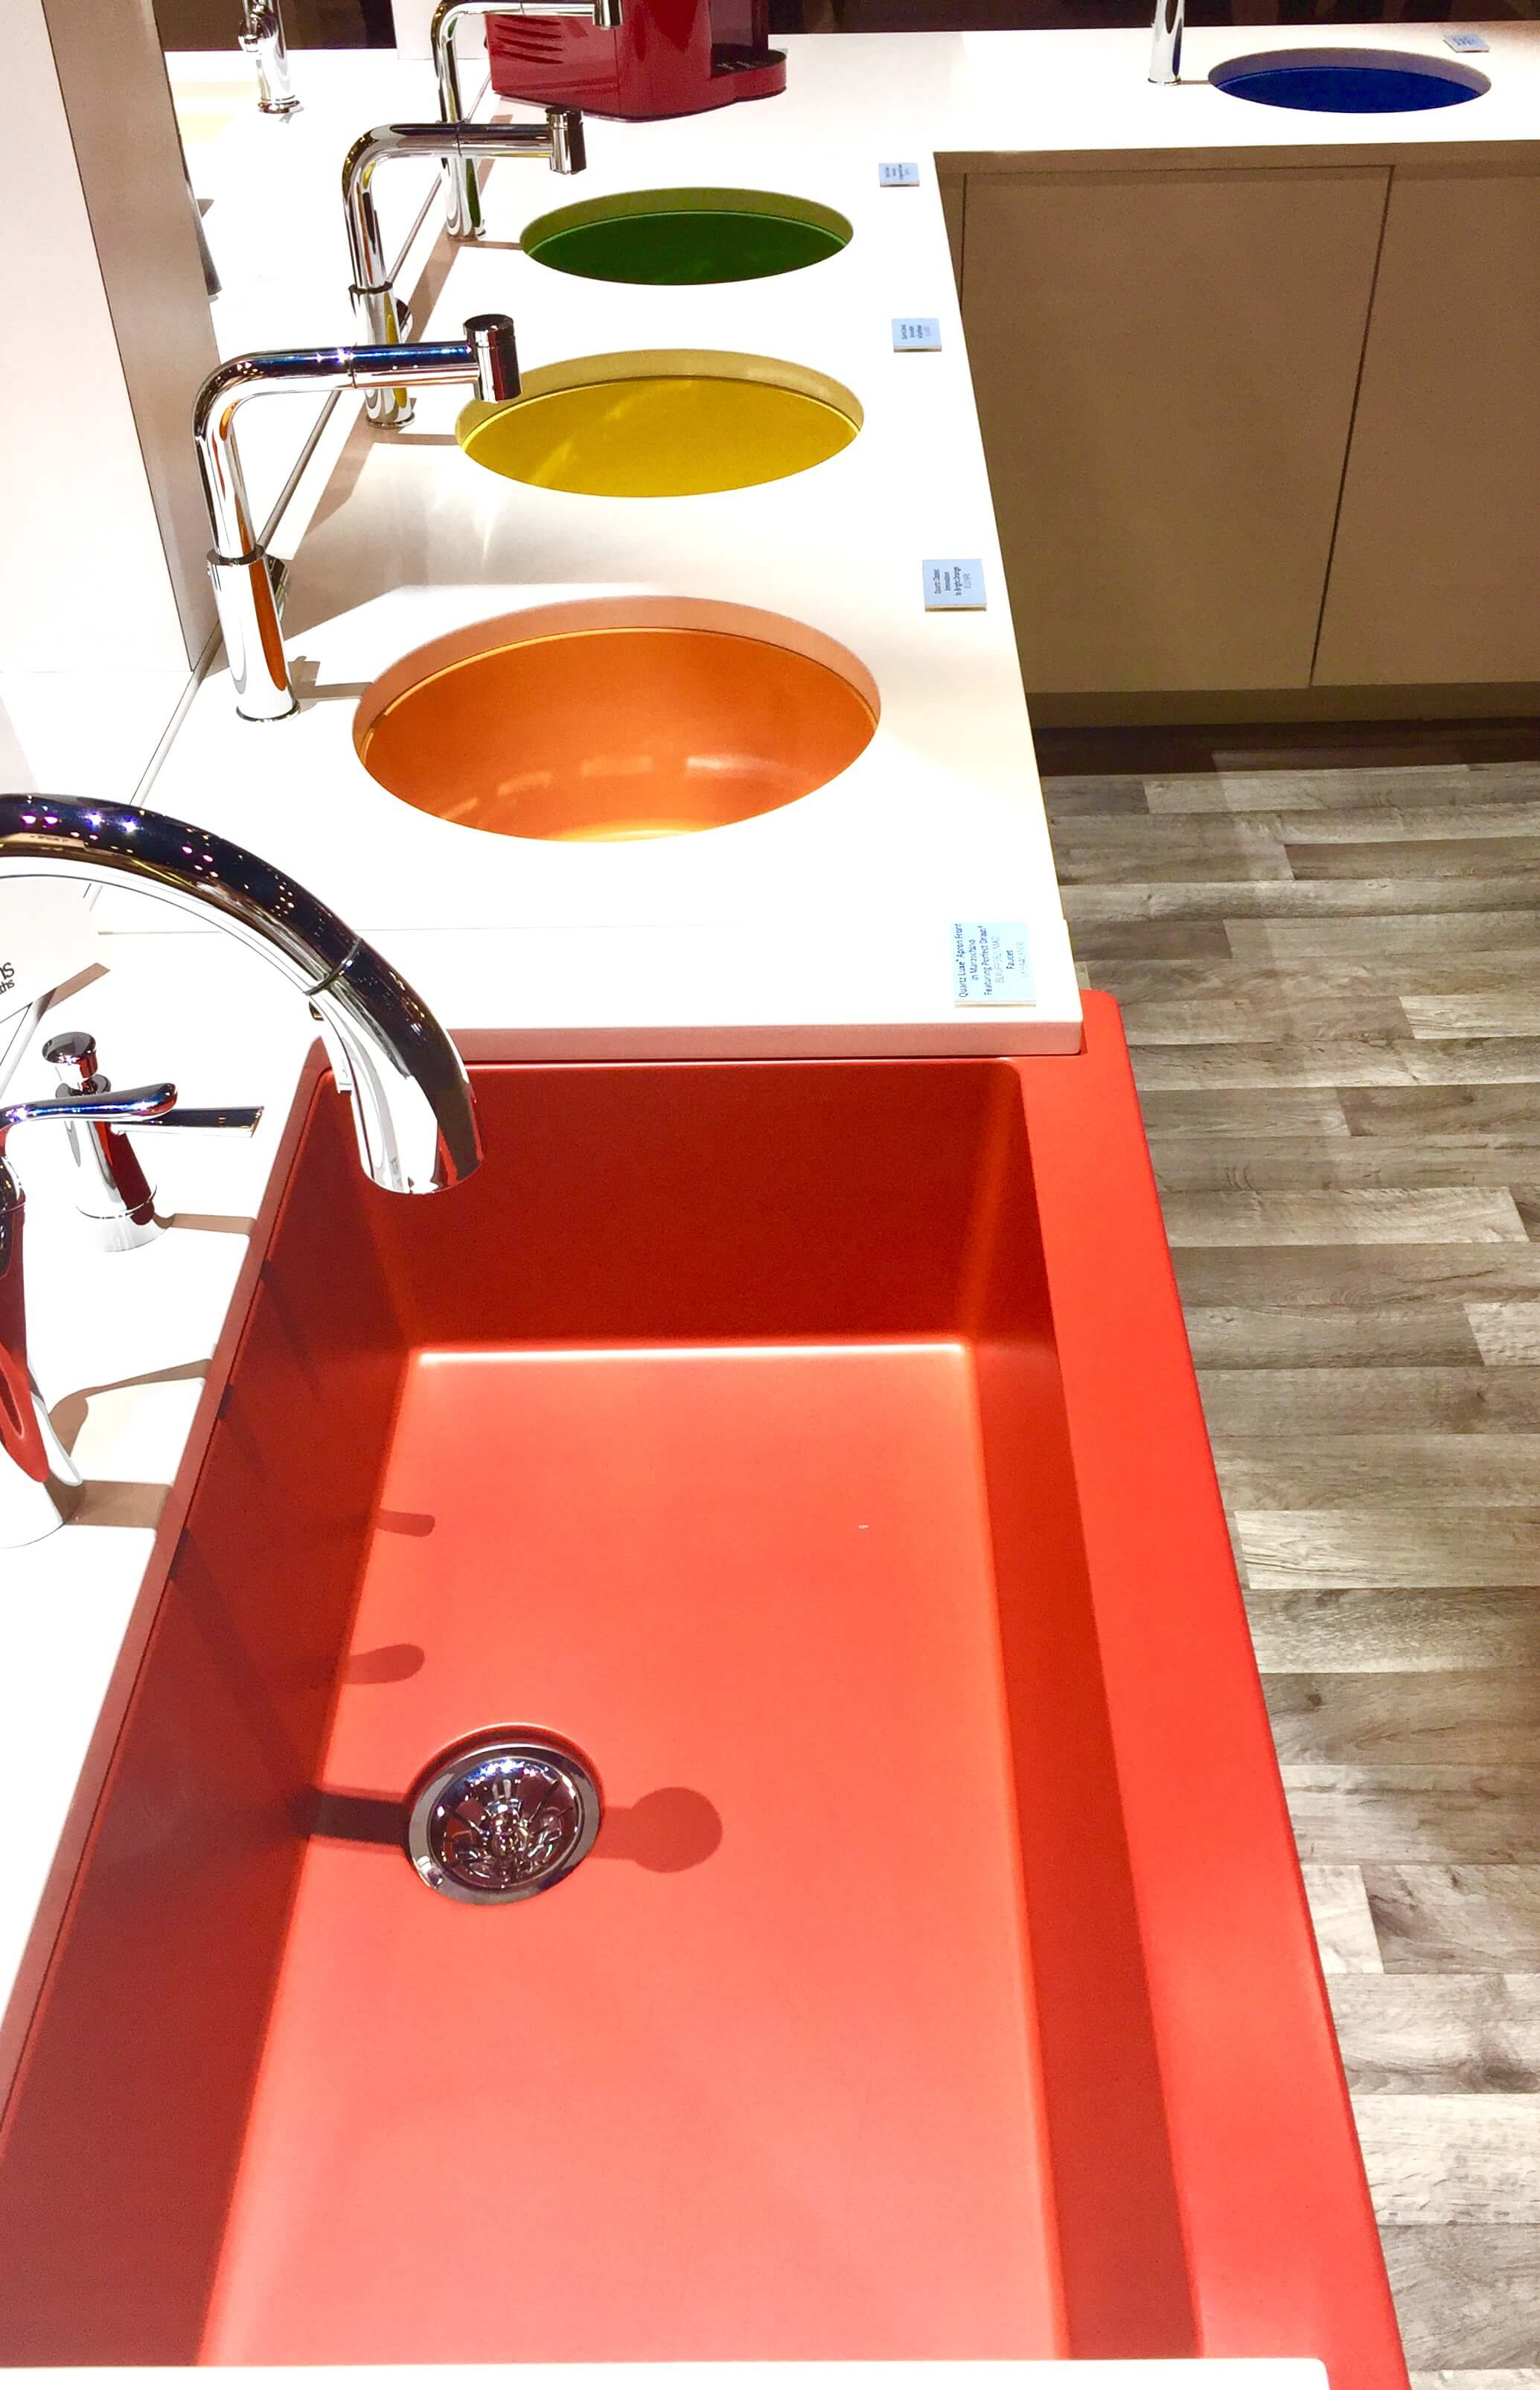 colored kitchen sinks country design ideas and bath trends at kbis 2017 - faucets ...